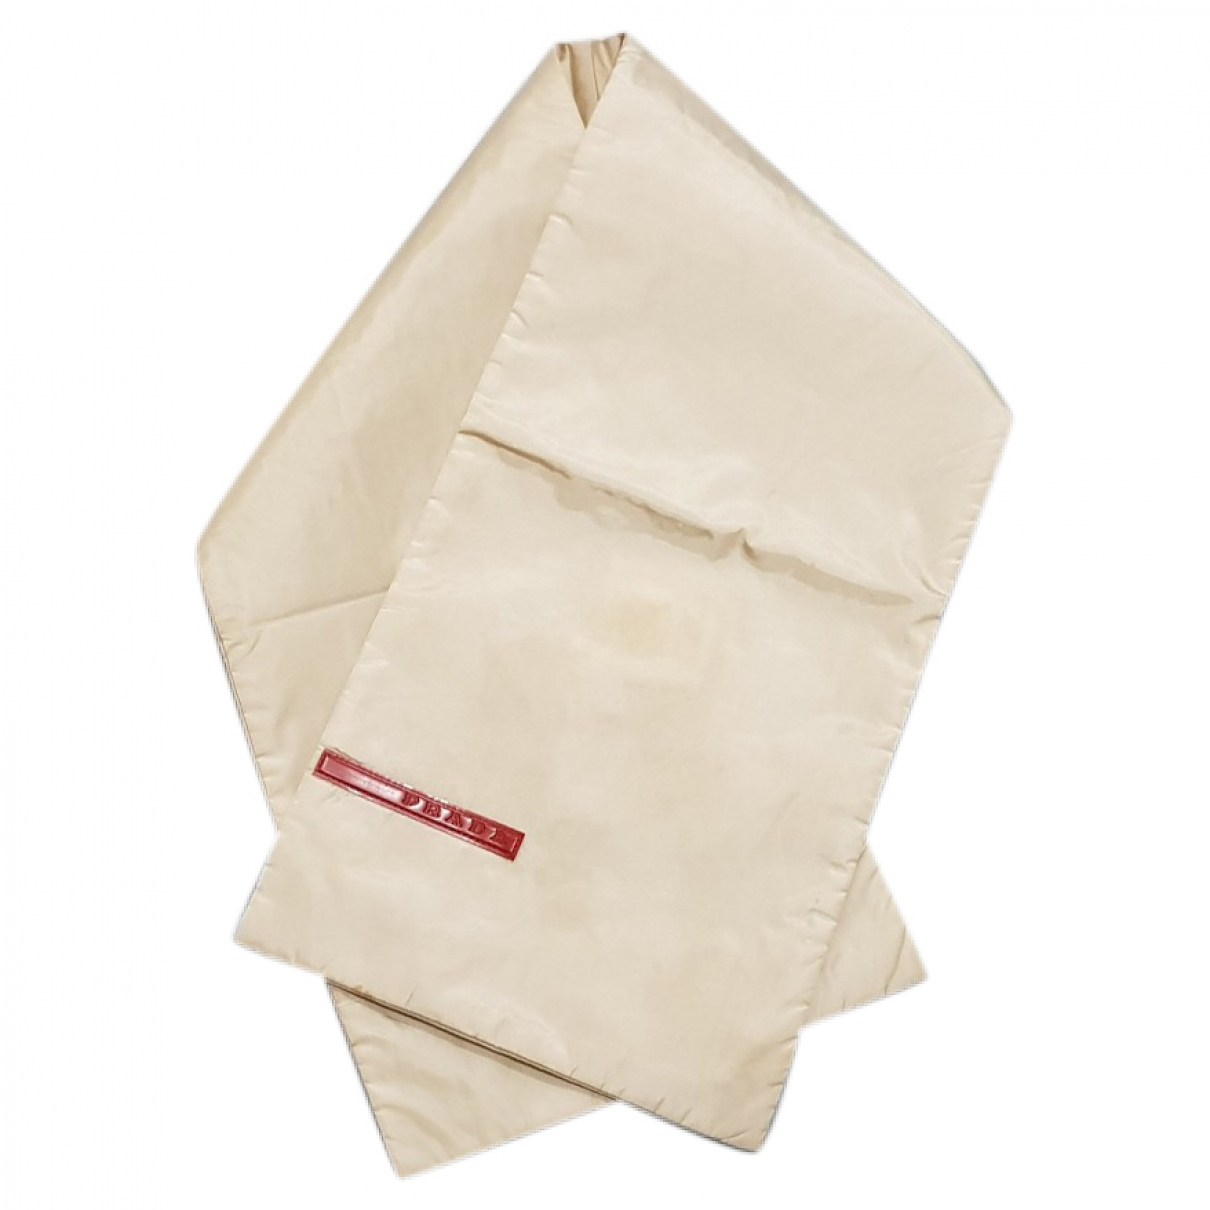 Prada \N Beige scarf for Women \N